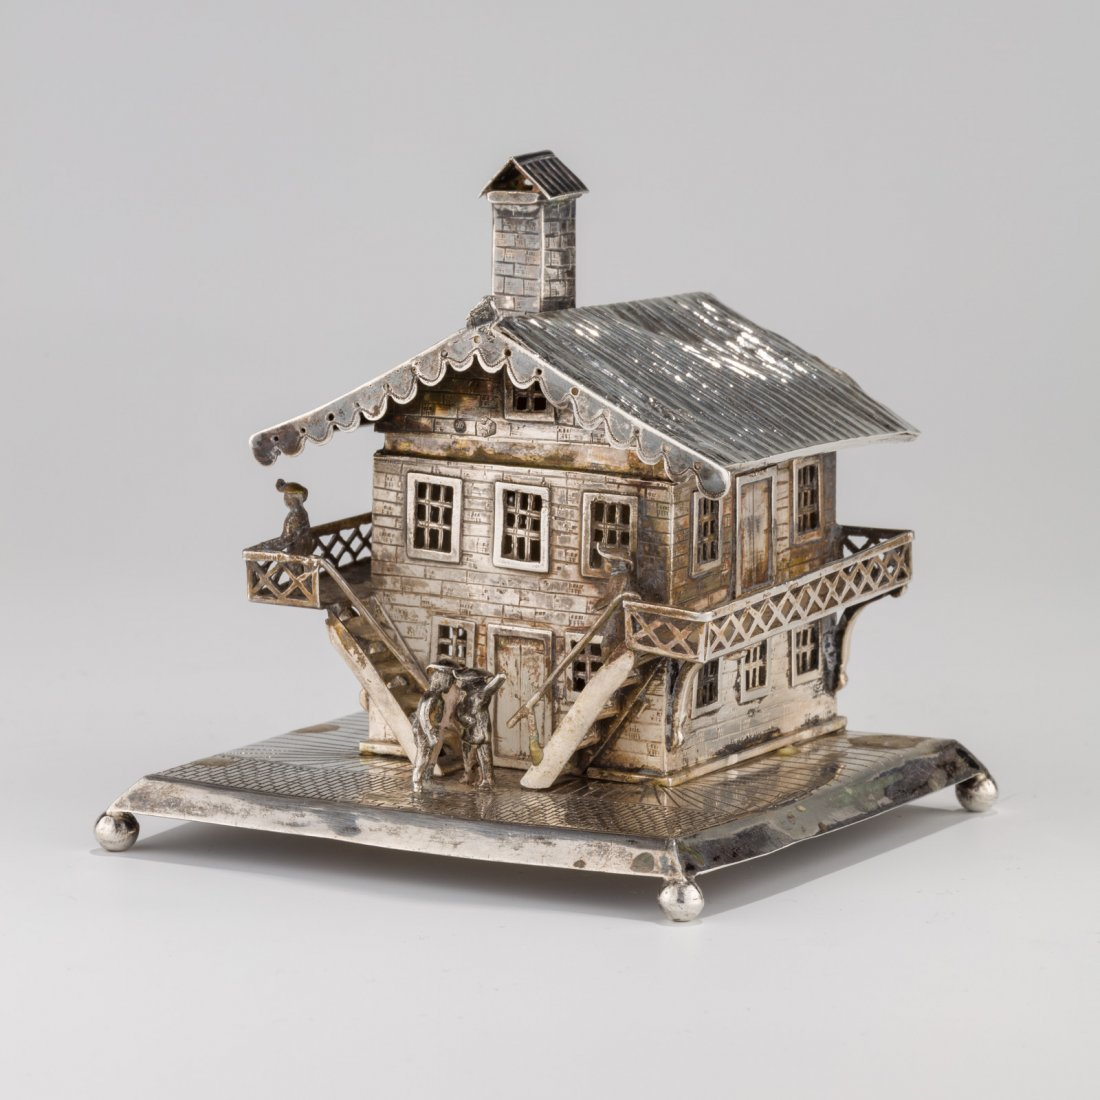 A LARGE SILVER CONTAINER. Dutch, 19th century. In the